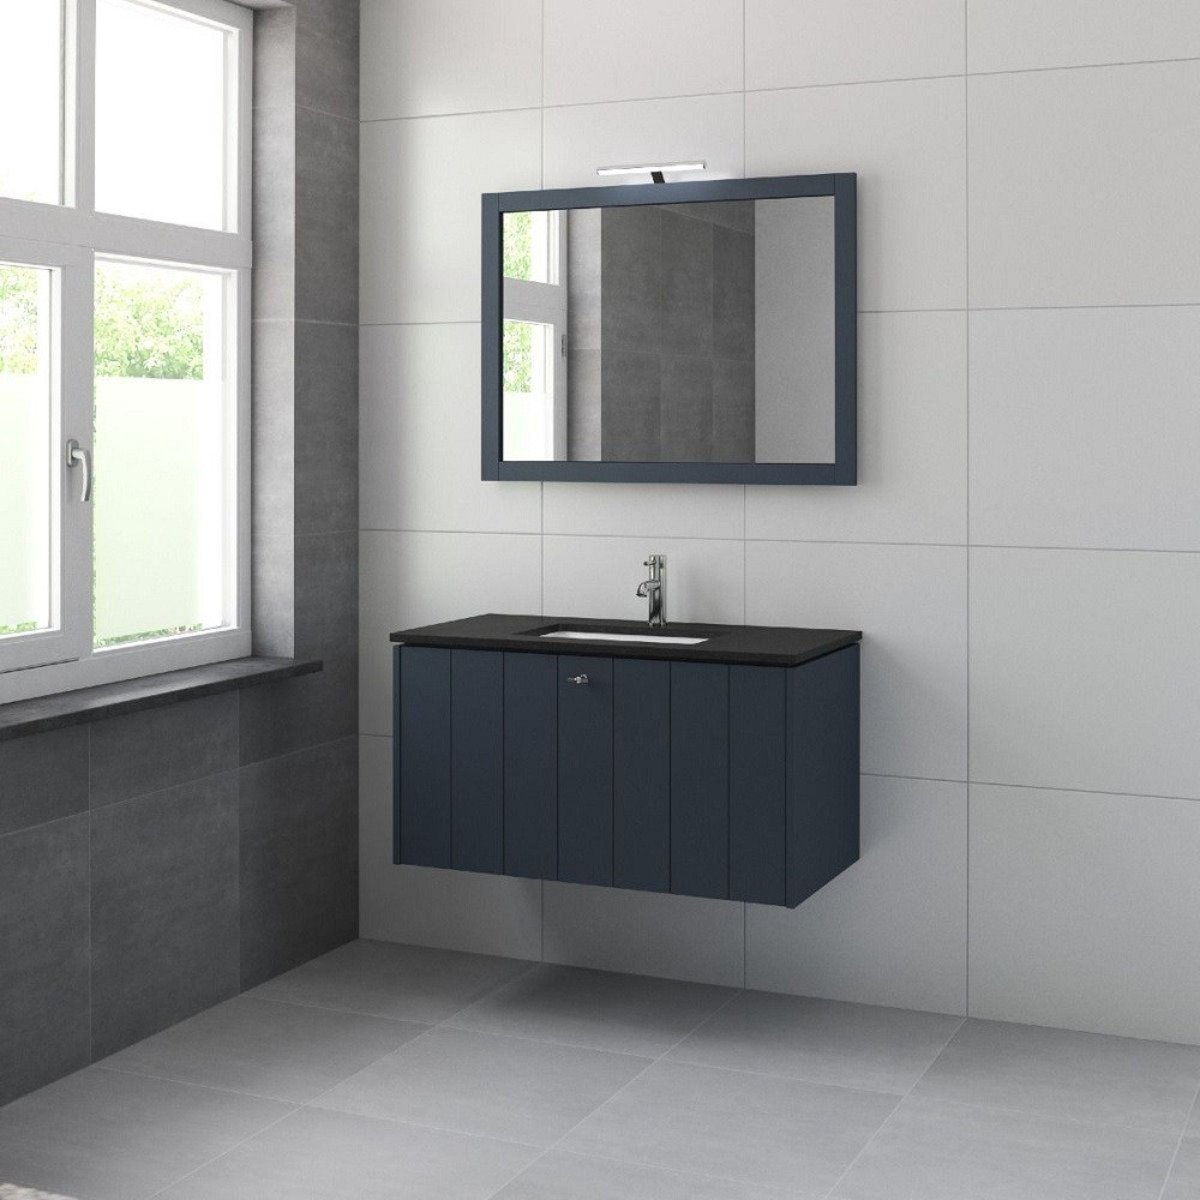 bruynzeel bino meuble sous lavabo 100cm 2 tiroirs bleu 231349. Black Bedroom Furniture Sets. Home Design Ideas